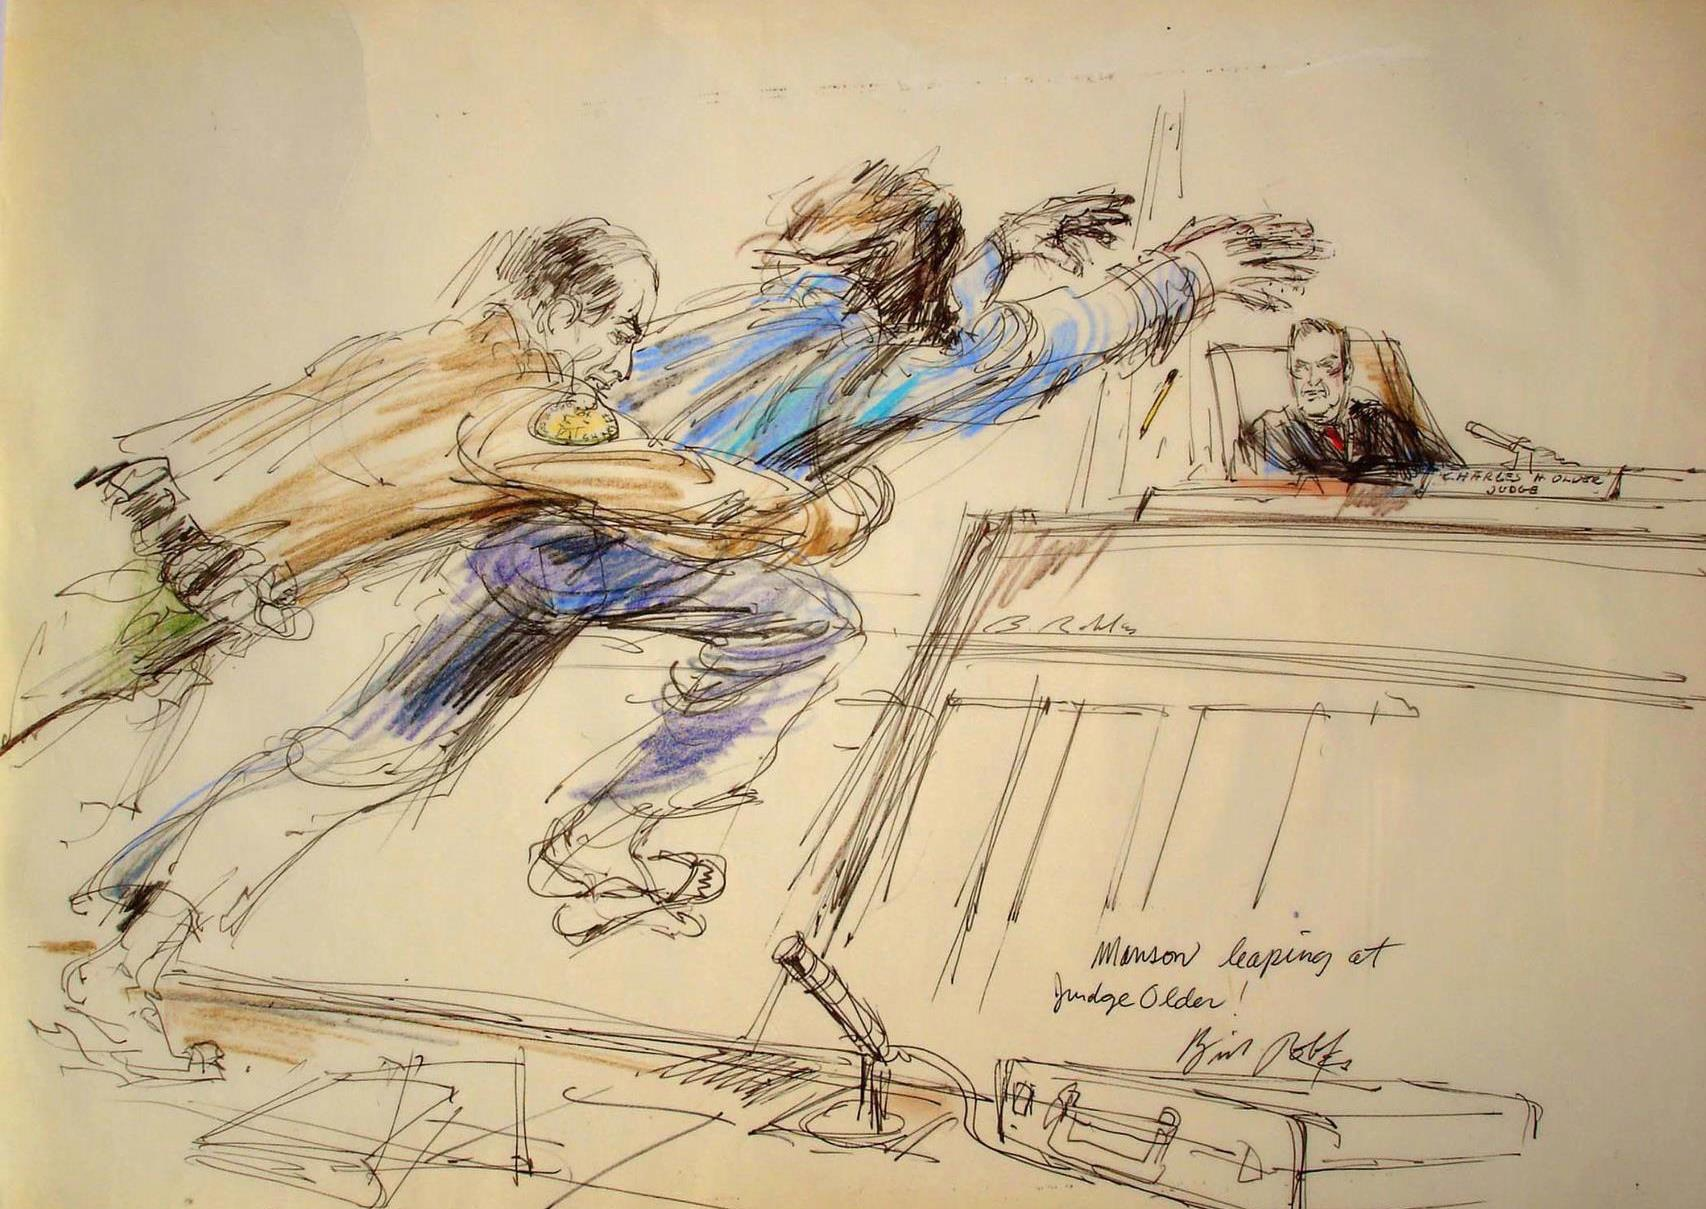 Charles Manson trial, 1970. The iconic photo of Manson leaping towards Judge Older, caught in midair by LA County Sheriff's Deputy